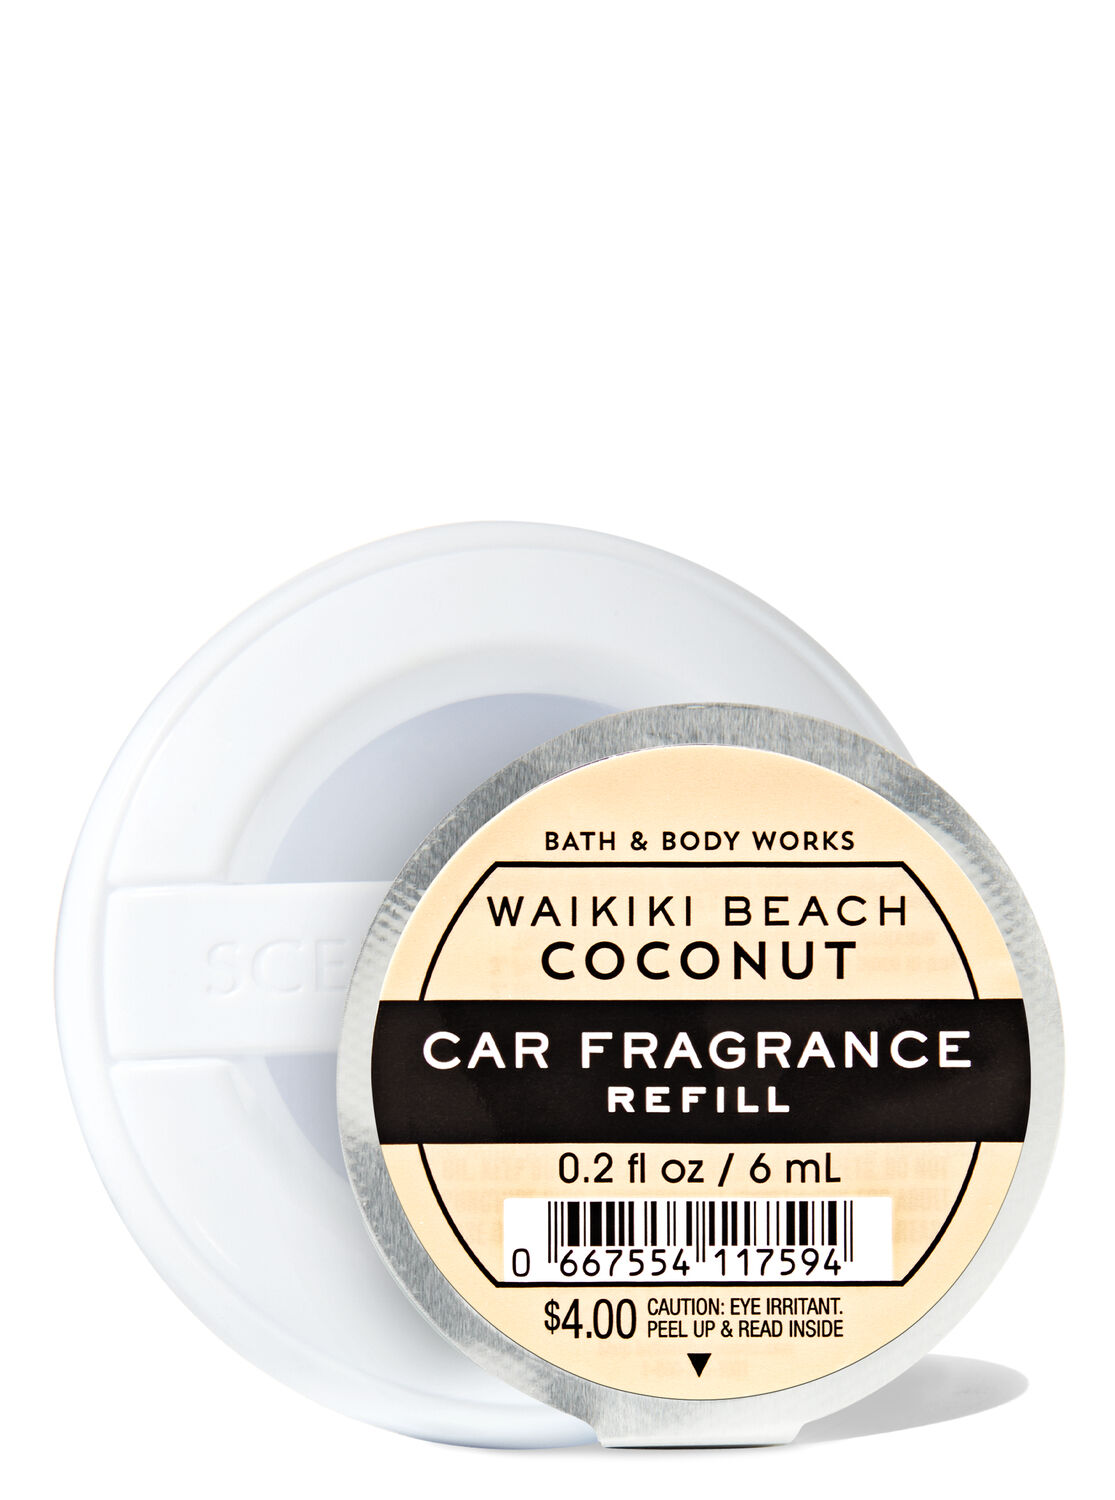 How To Put Bath And Body Works Scentportable In Car : works, scentportable, Fresheners, Fragrance, Works